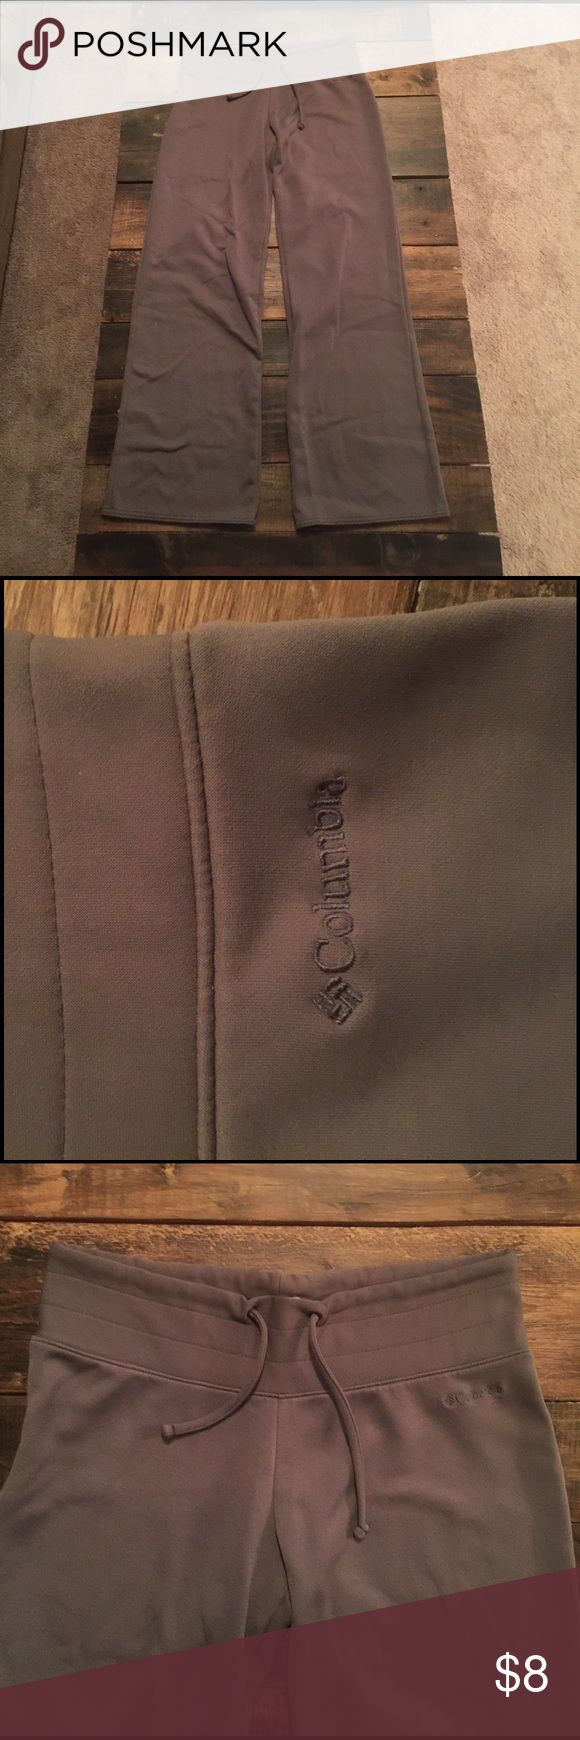 "Columbia Sweatpants These are grey Columbia Titanium sweatpants. They are a women's ""m short"". The material is 56% polyamide, 36% Polyester, 8% elastic. I'm not sure how many times they have been worn because my mom gave them to me. I have not ever worn them tho. they are super soft and in good condition. Columbia Pants Track Pants & Joggers"